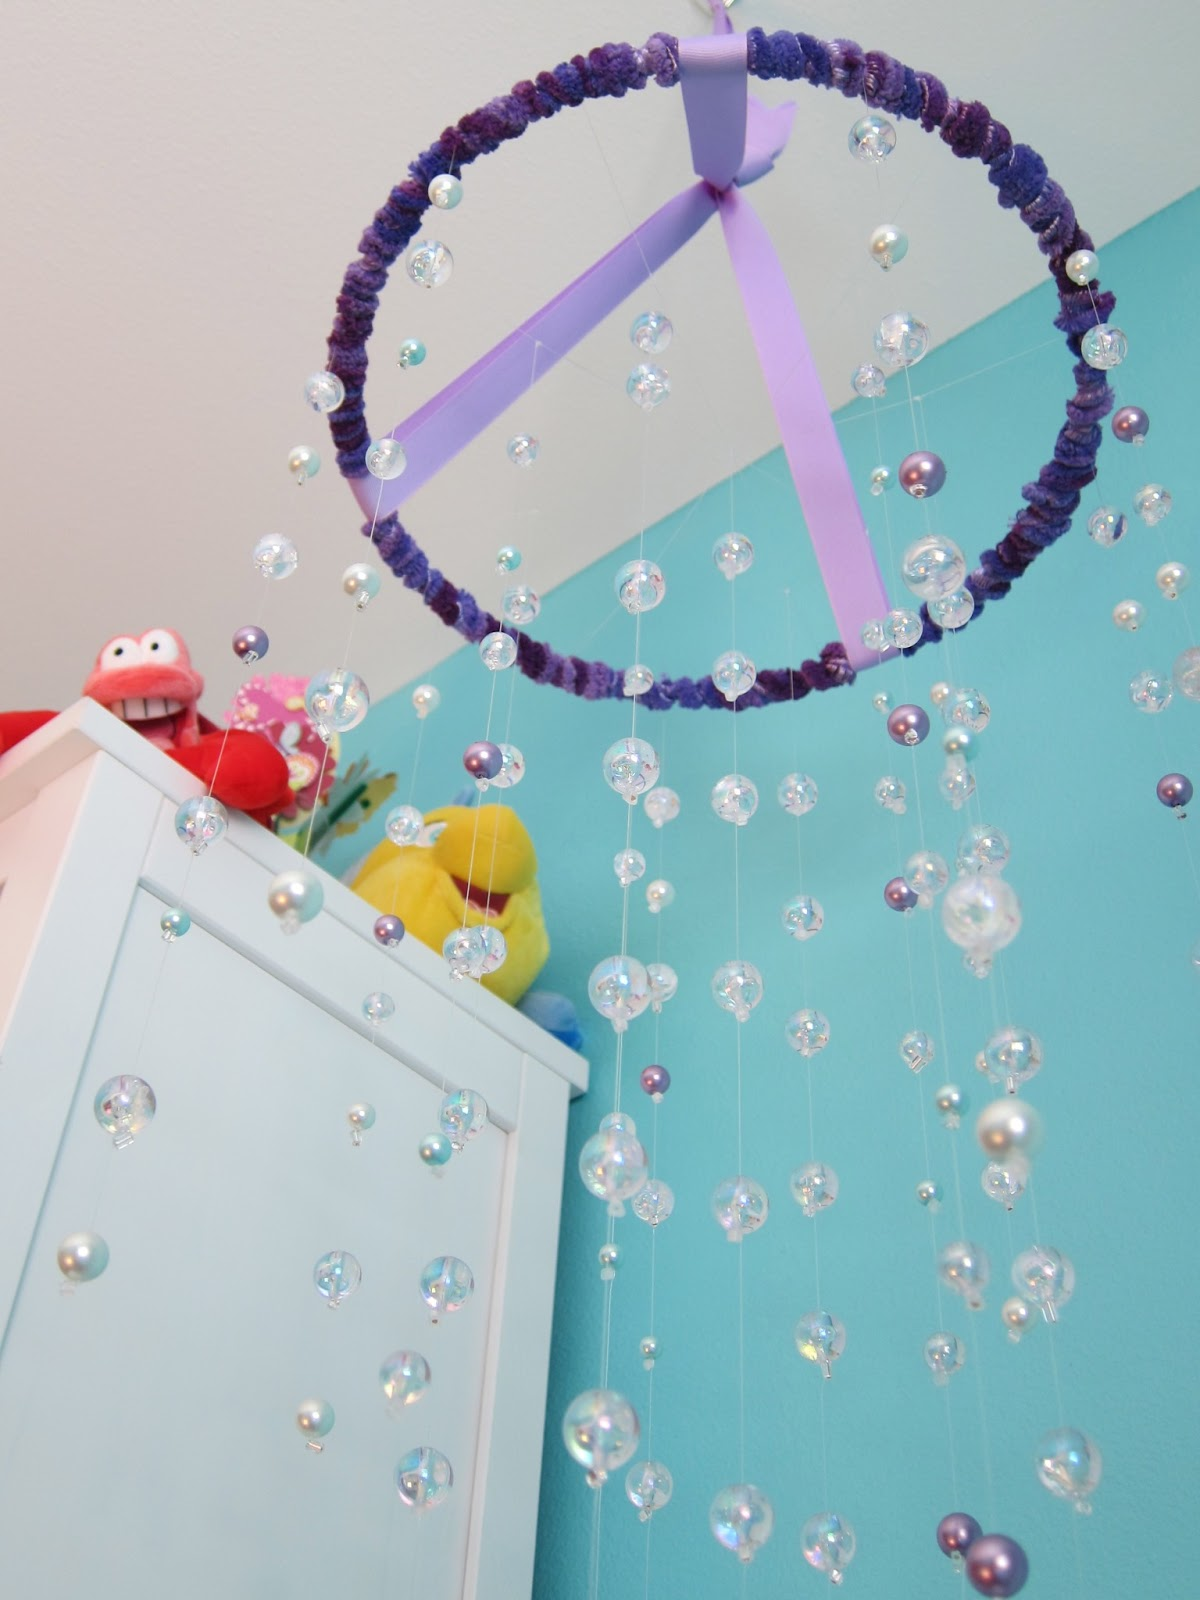 little mermaid bedroom set   all sorts of random  little mermaid room  bubble mobile tutorial. Little Mermaid Bedroom idea   A1houston com